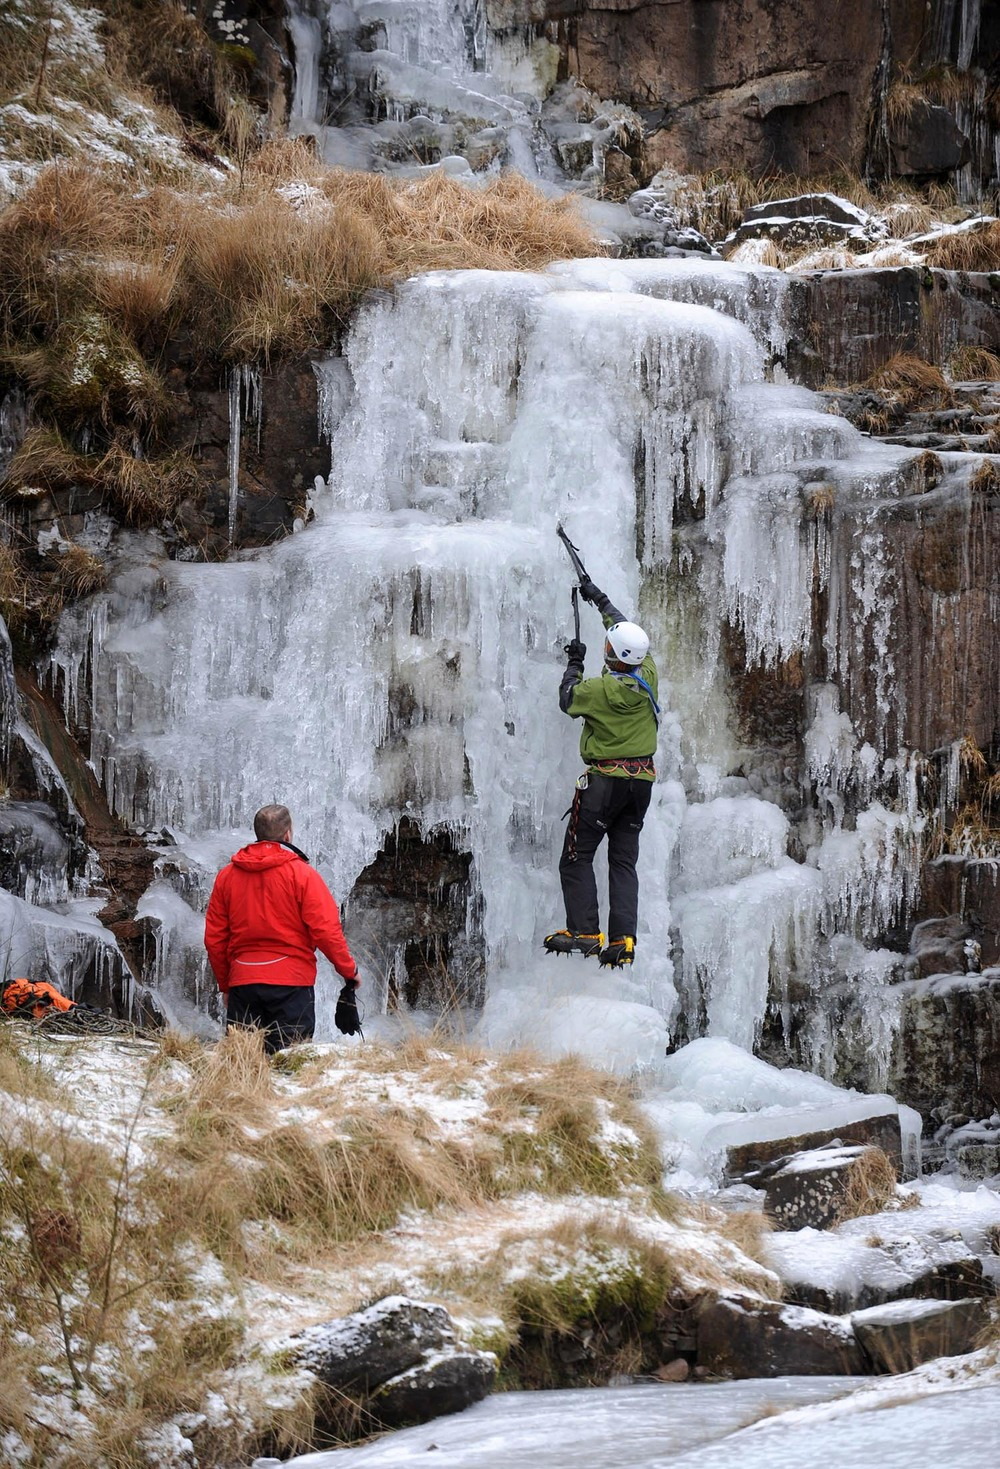 Climbers try to climb a frozen waterfall near Brecon